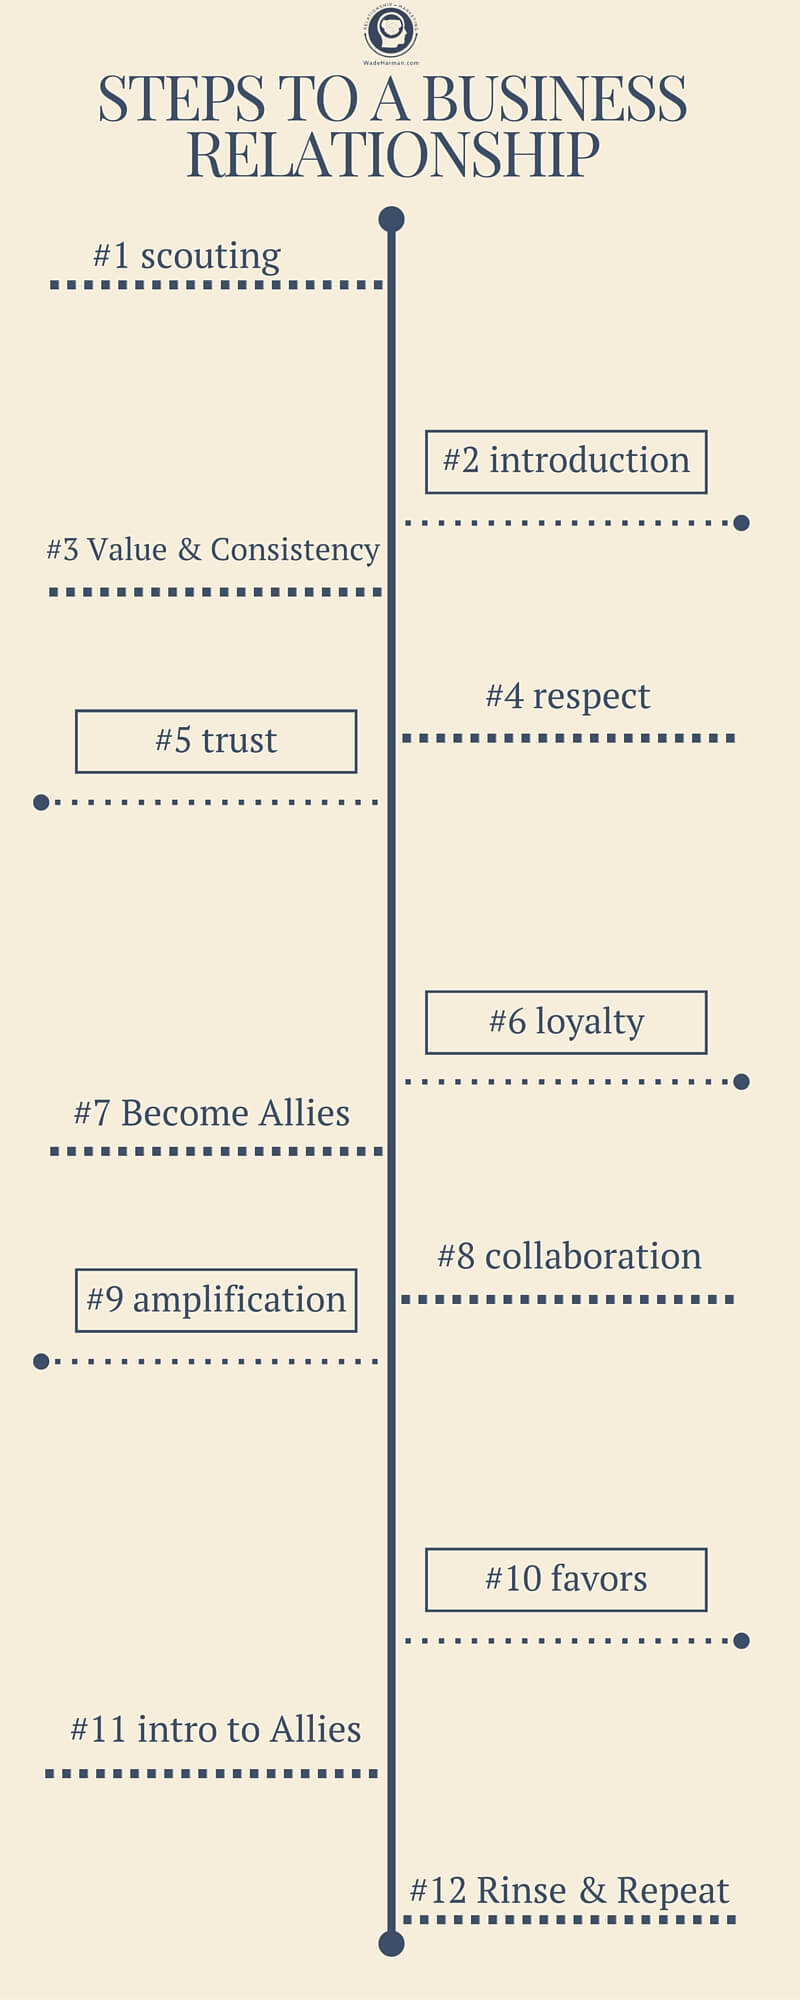 steps to a business relationship infographic